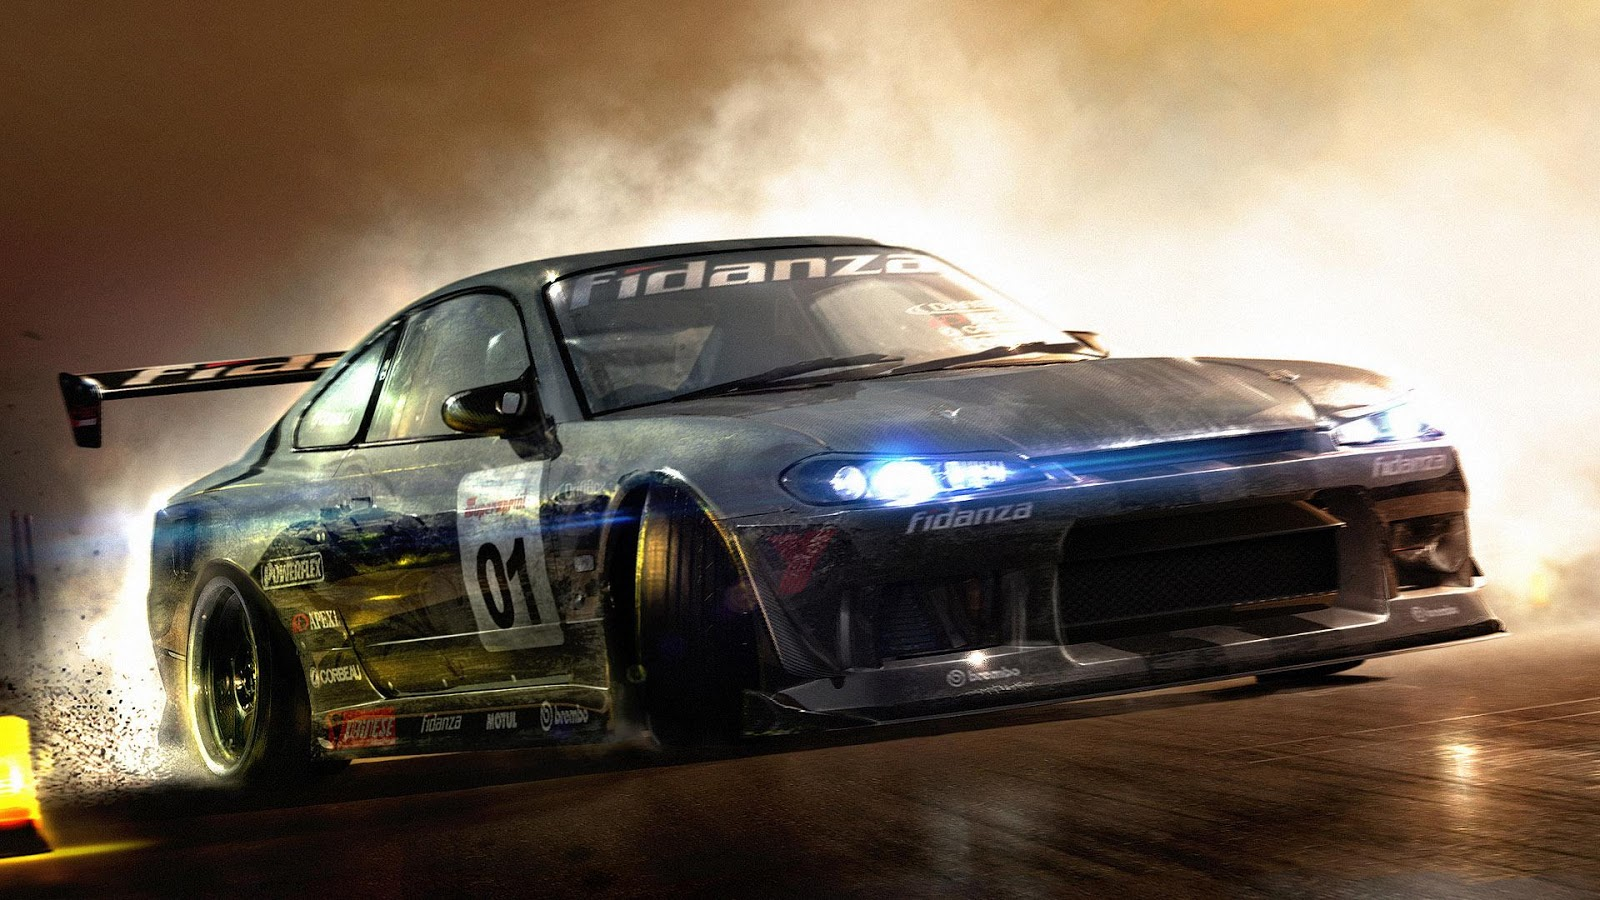 Free Latest Full HD Quality Desktop Wallpapers: Full HD Car Wallpapers